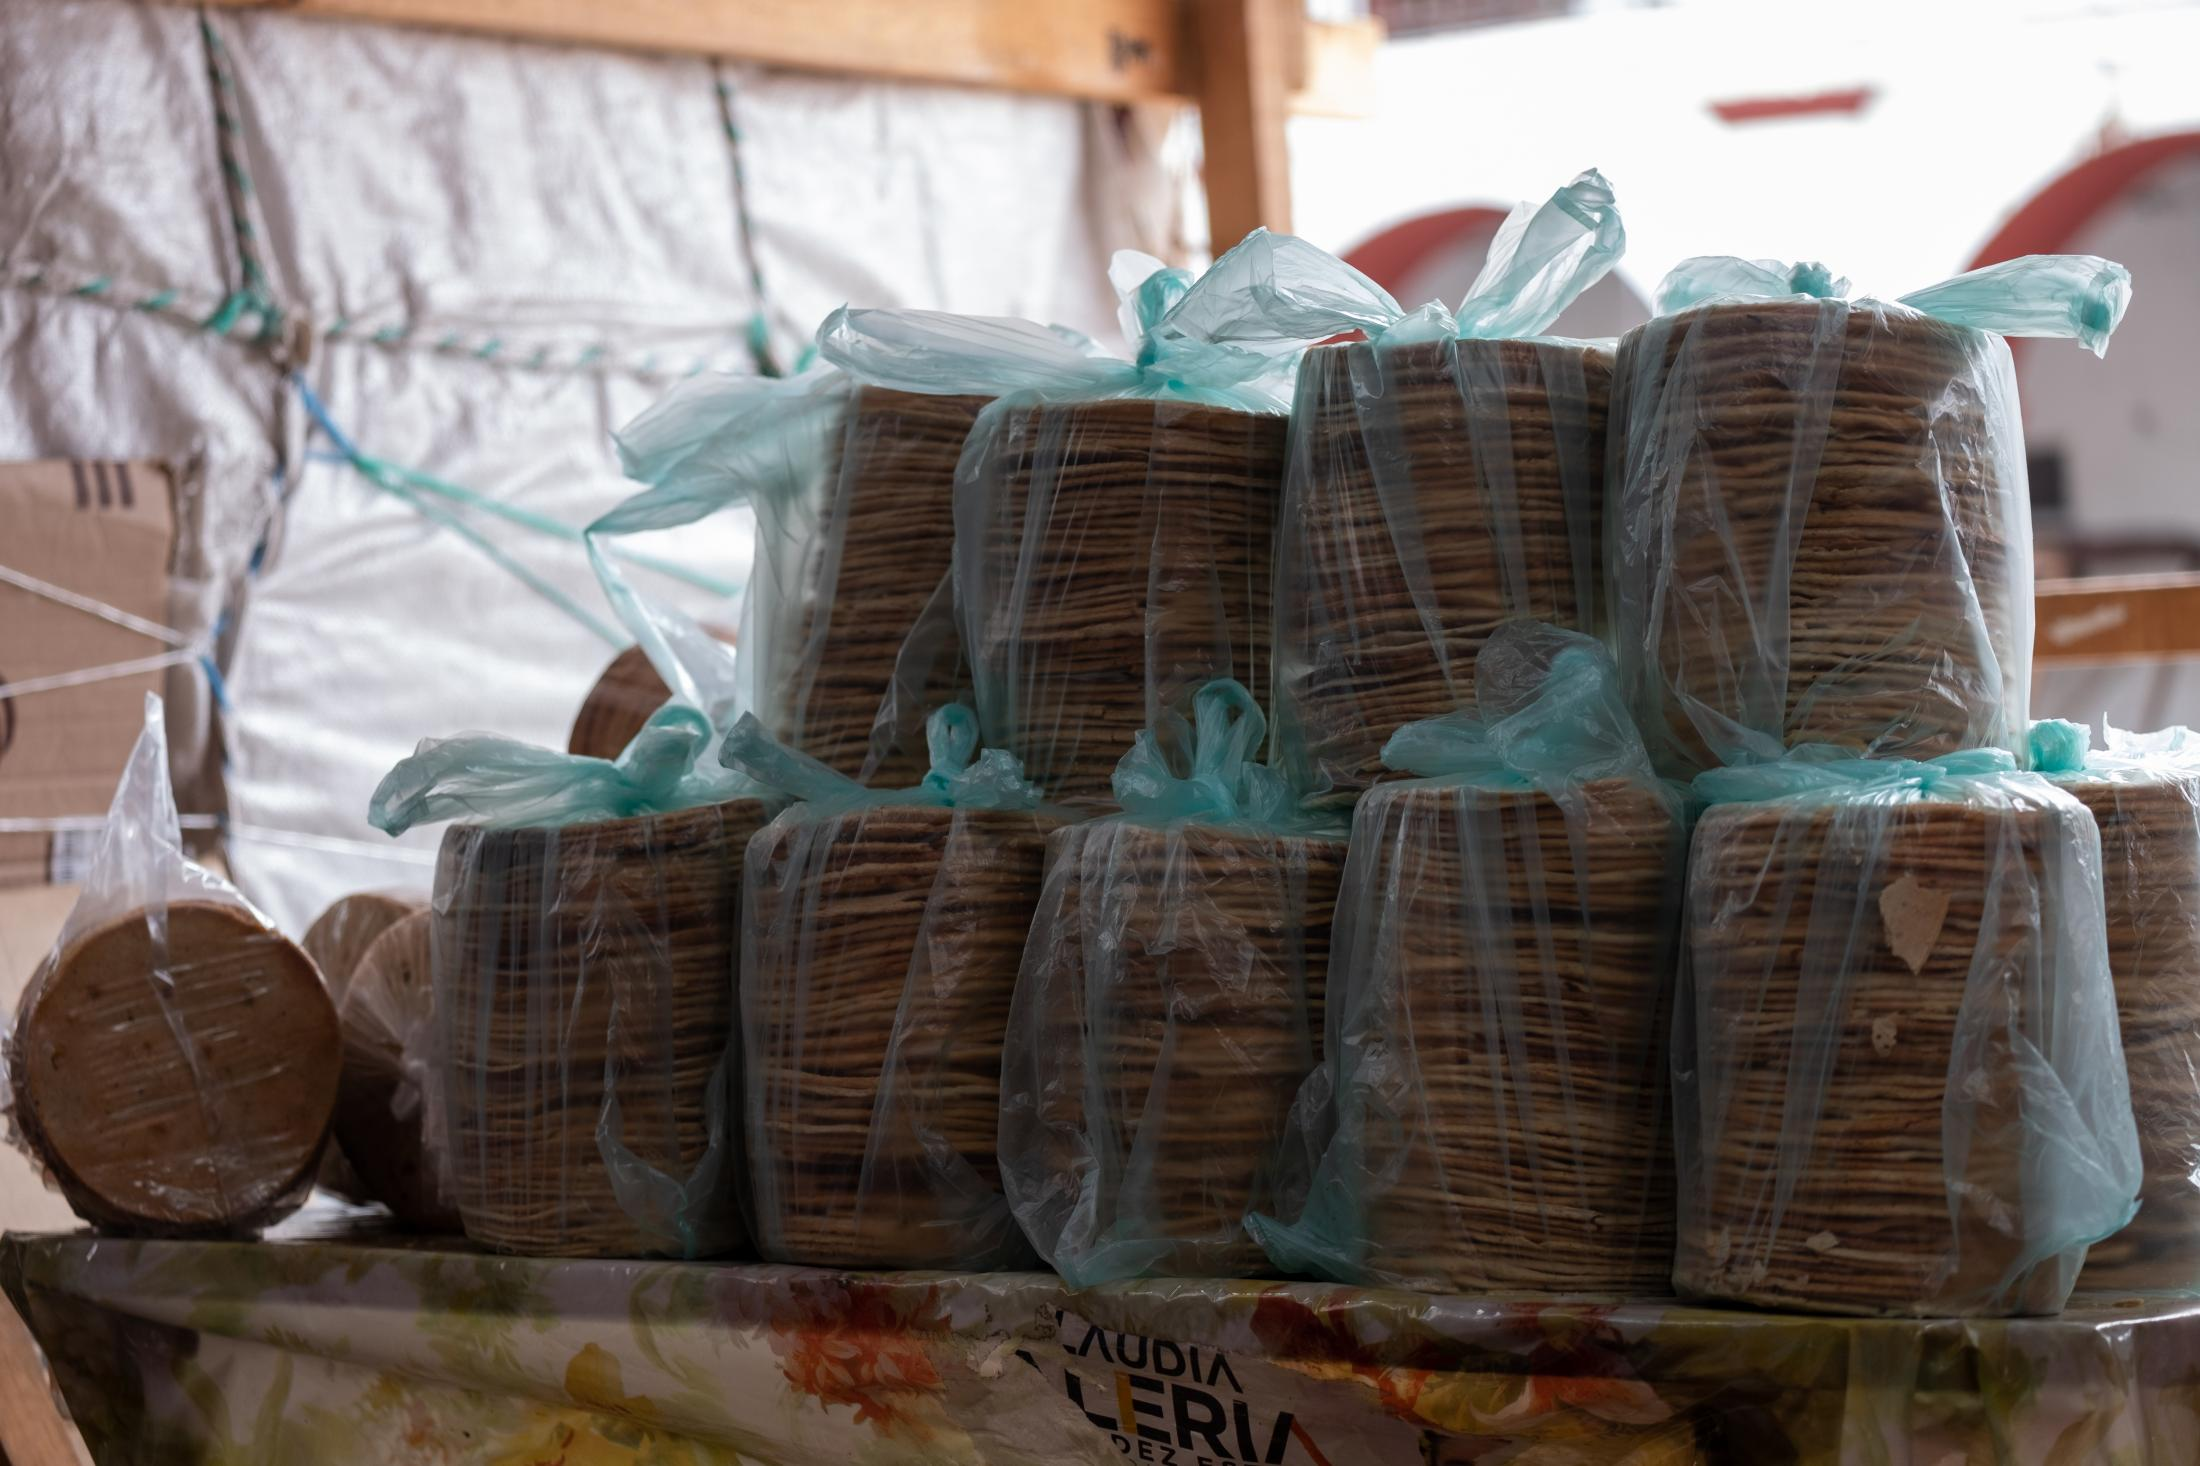 Totopos, a local food that is produced traditionally in Juchitec communities. Totopos have a smoky and sweet flavor with a crunchy texture. Totopos are made in a special way so they can be stored and last longer than regular toasted tortillas. In the markets you can see them packed in stacks like these as they're produced and sold by women from the community.